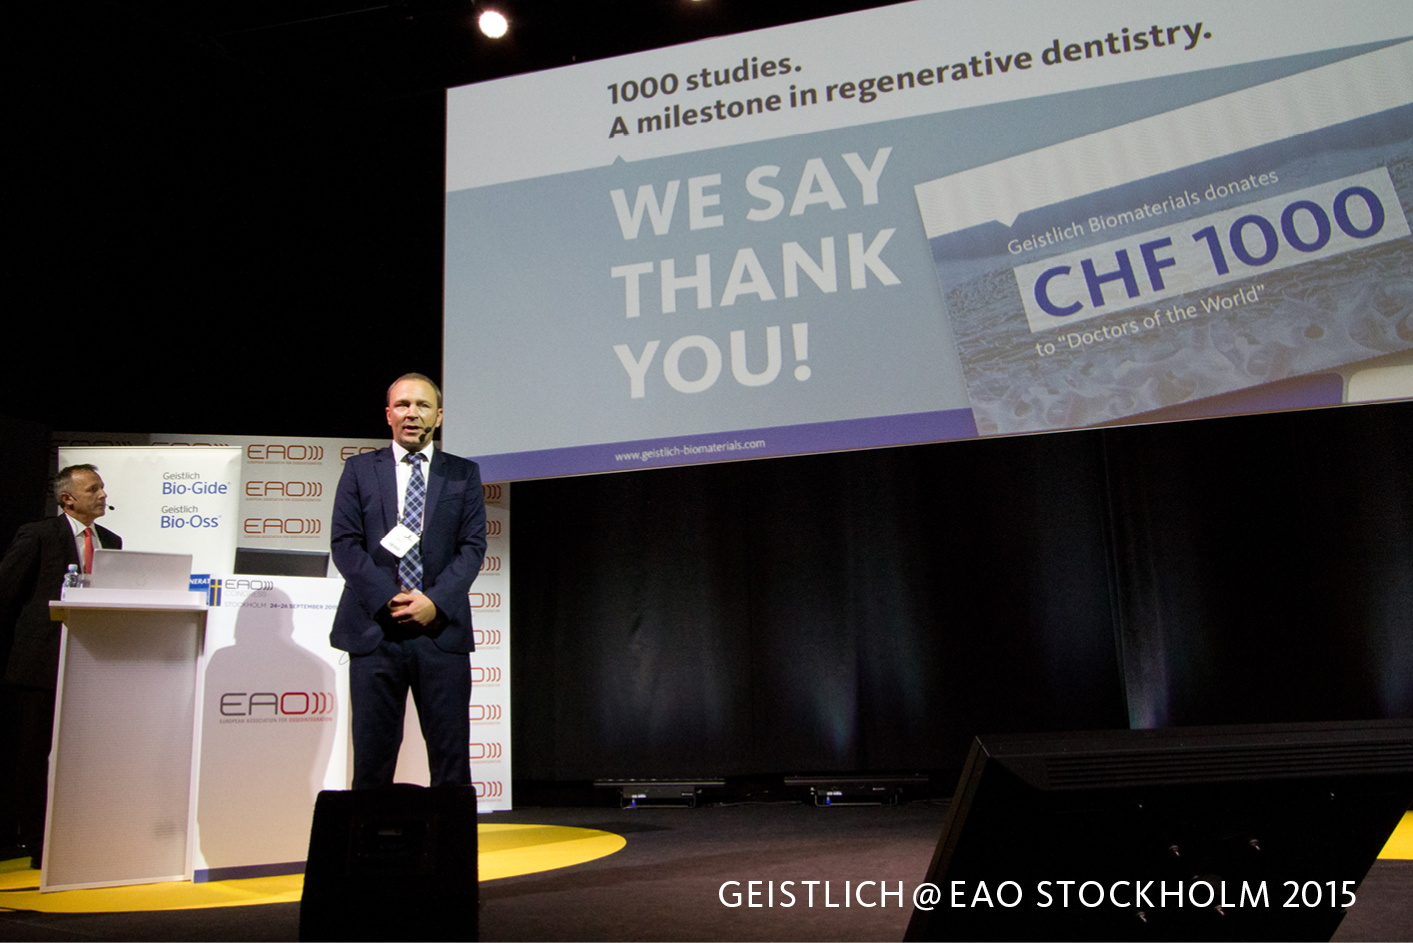 1000th scientific publication: Geistlich celebrated at the EAO